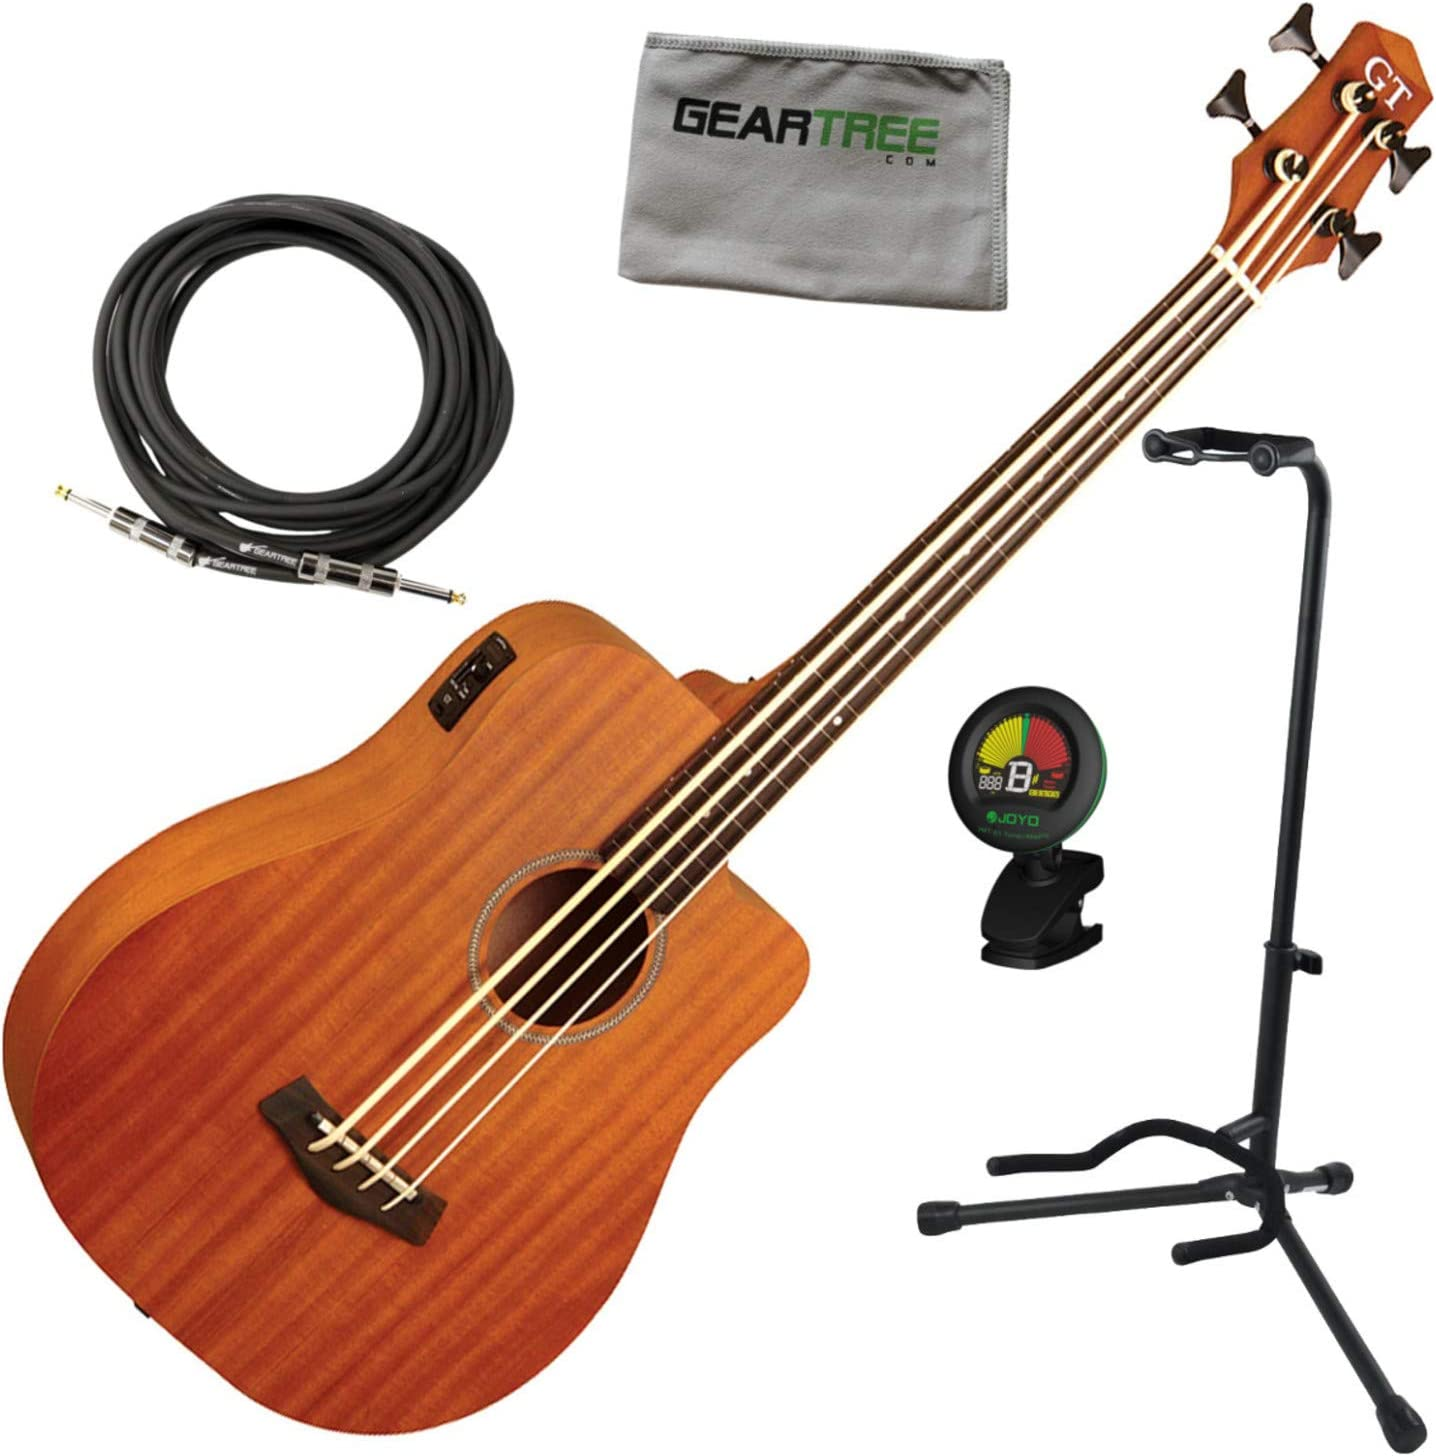 Gold Tone Finally resale Spring new work one after another start M-Bass25 FL 25.5'' electric acoustic Mi Scale fretless